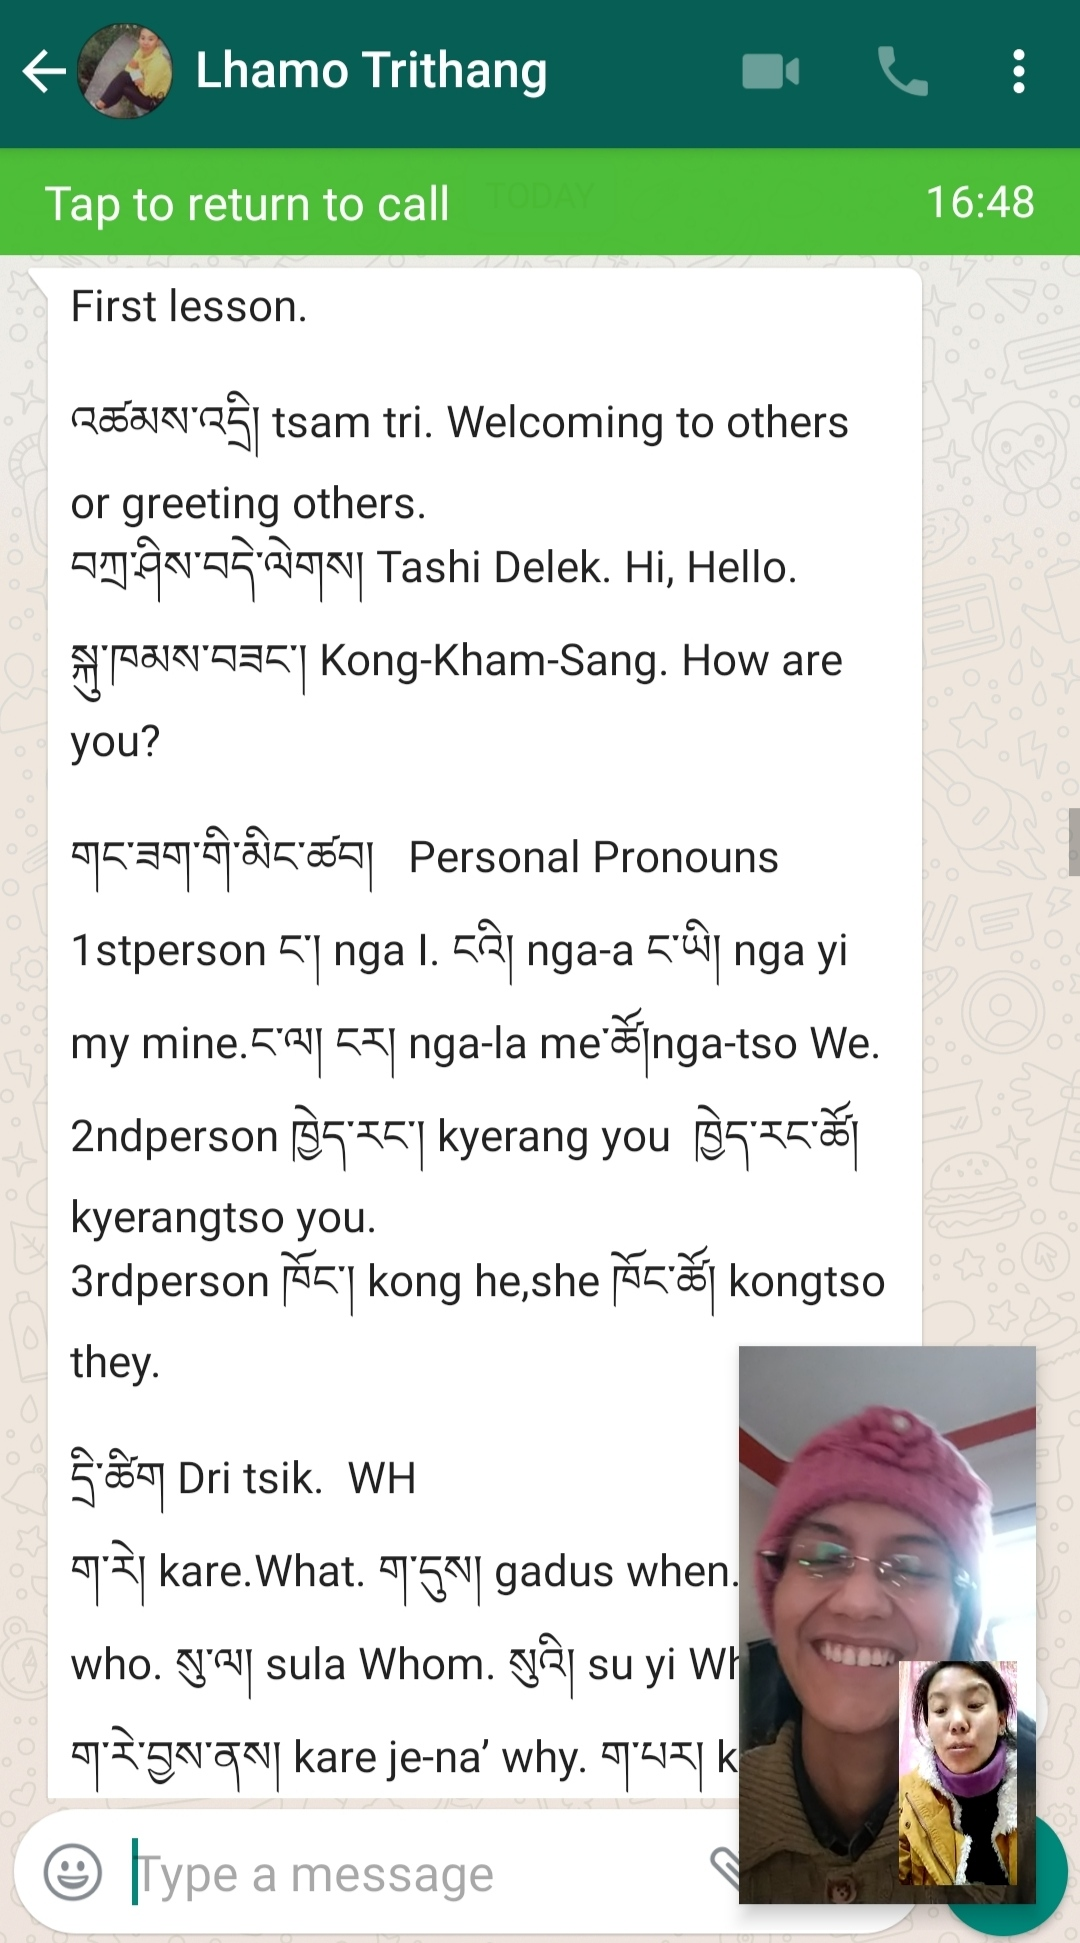 Screenshot of Ms. LLhamo Trithang and Shivangi on a Whatsapp video call, with a text of the first lesson outline in the background: welcoming others & personal pronouns.